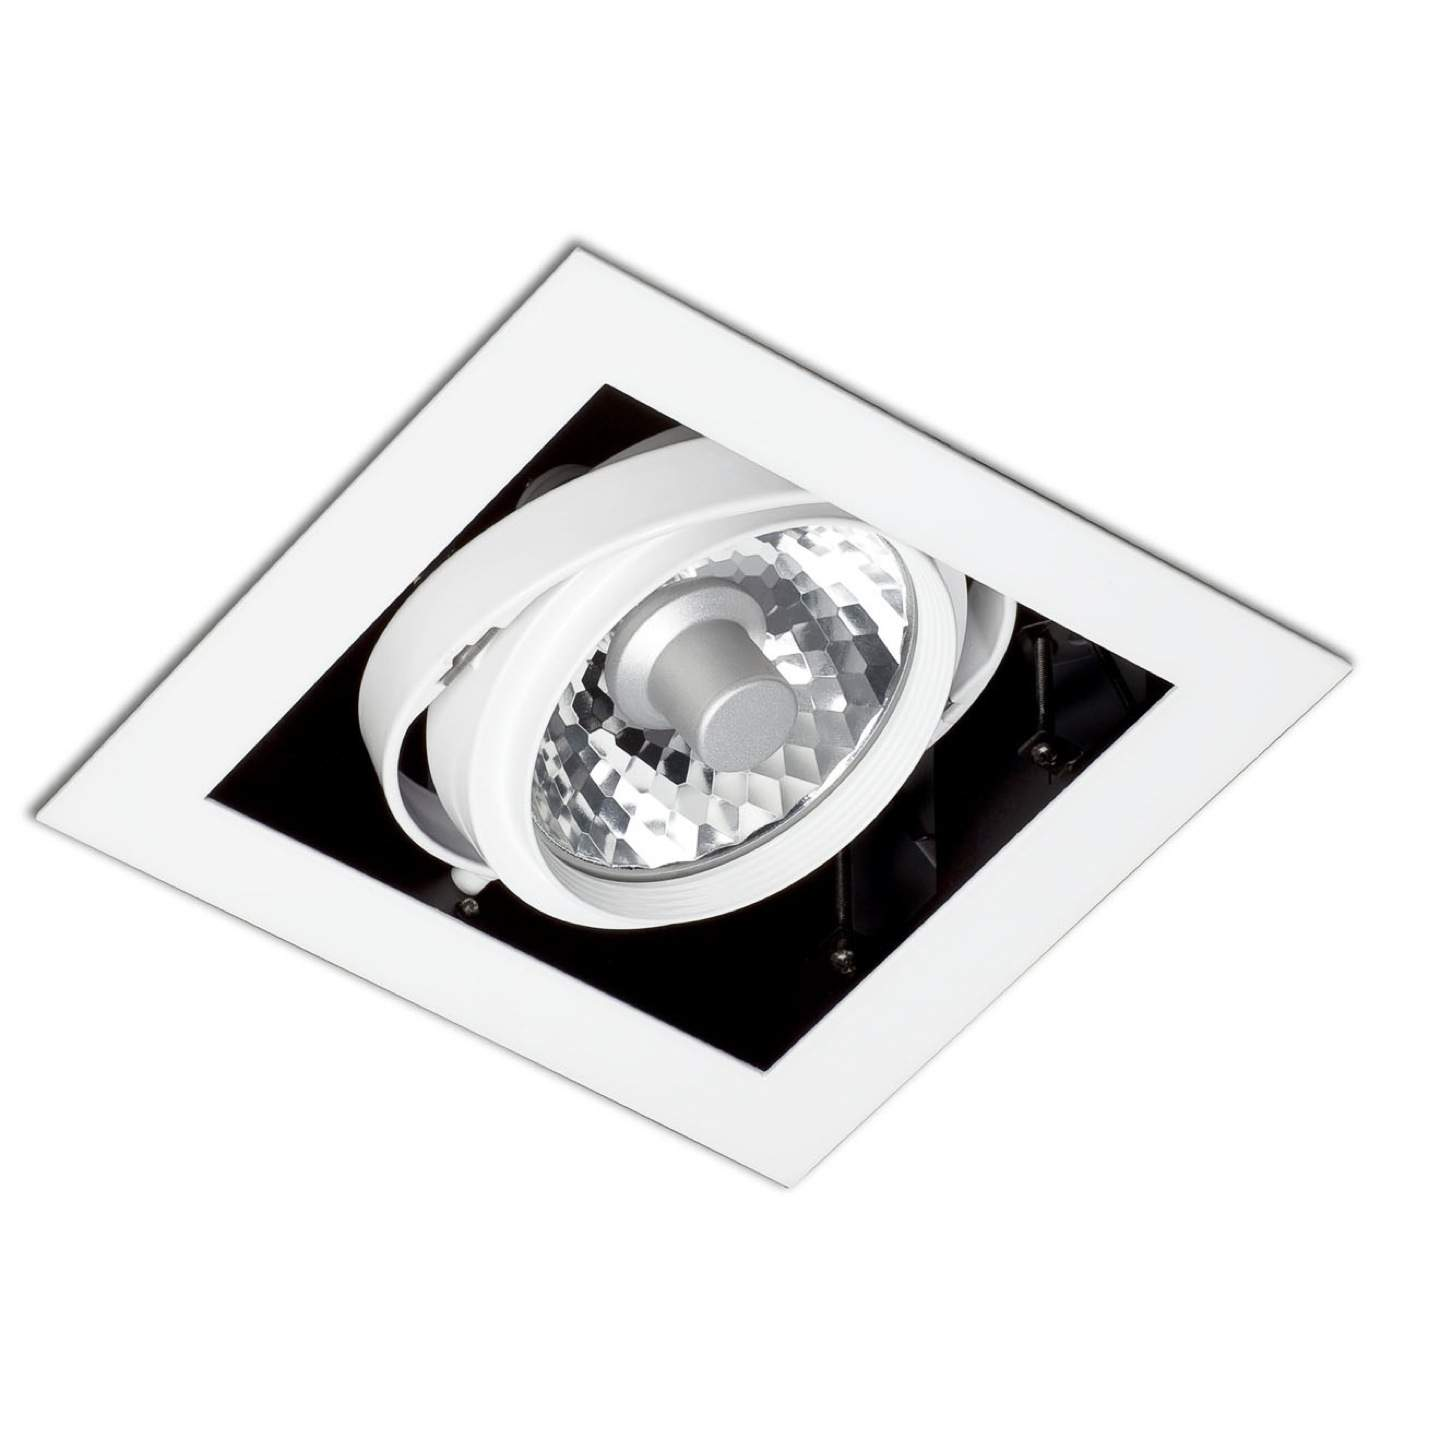 Morris Recessed Ceiling (body without PortaLámpara s) 1xelement white